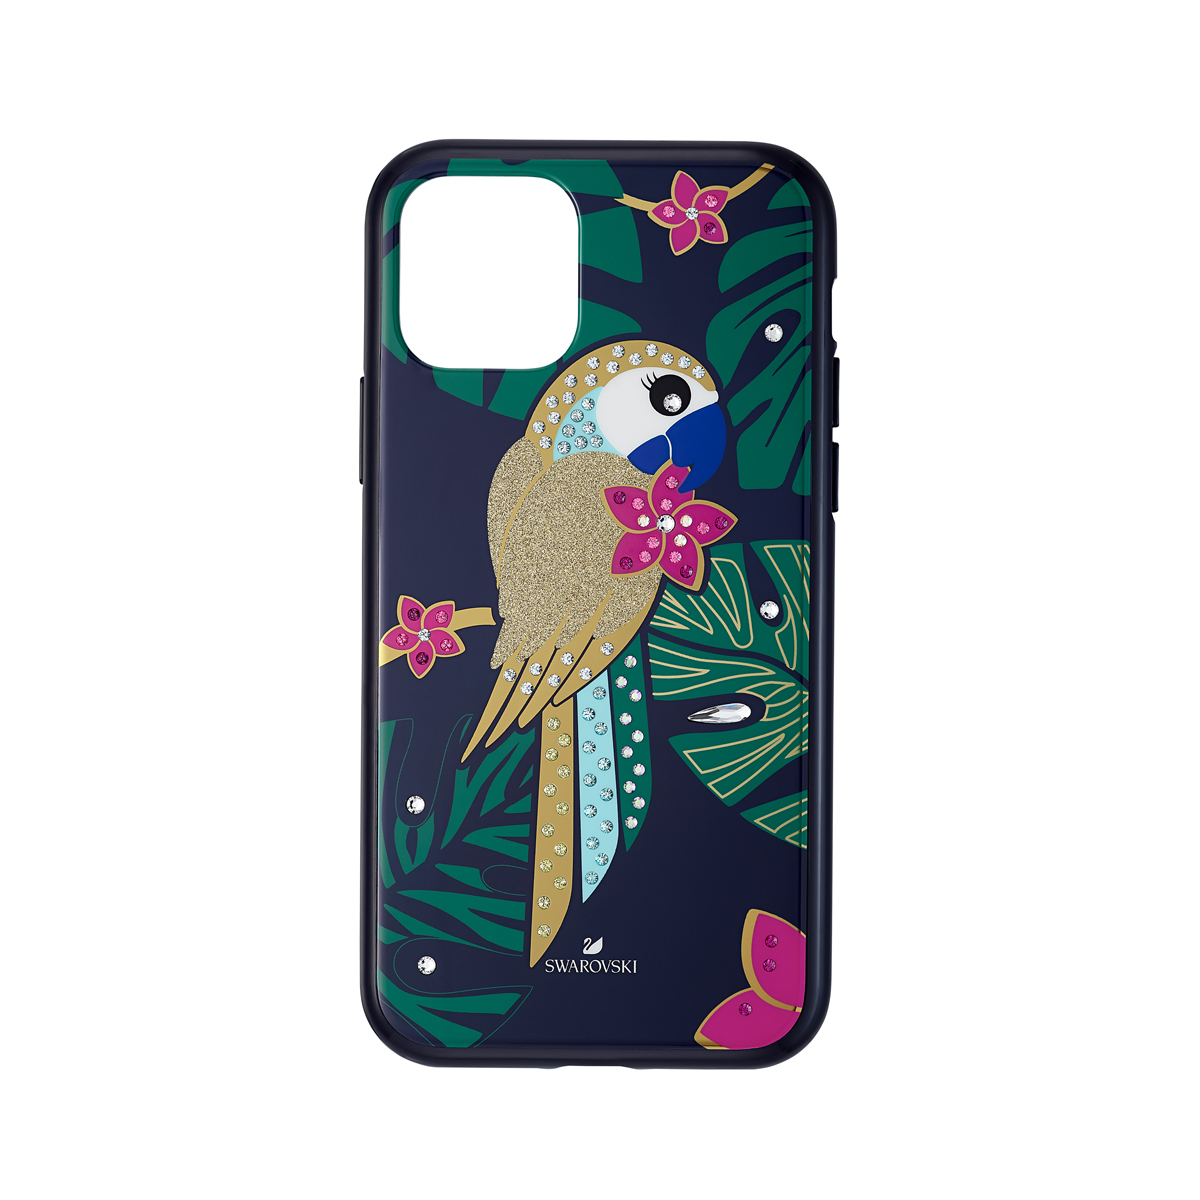 Swarovski Mobile Phone Case Tropical iPhone 11 Pro Case Multi Parrot